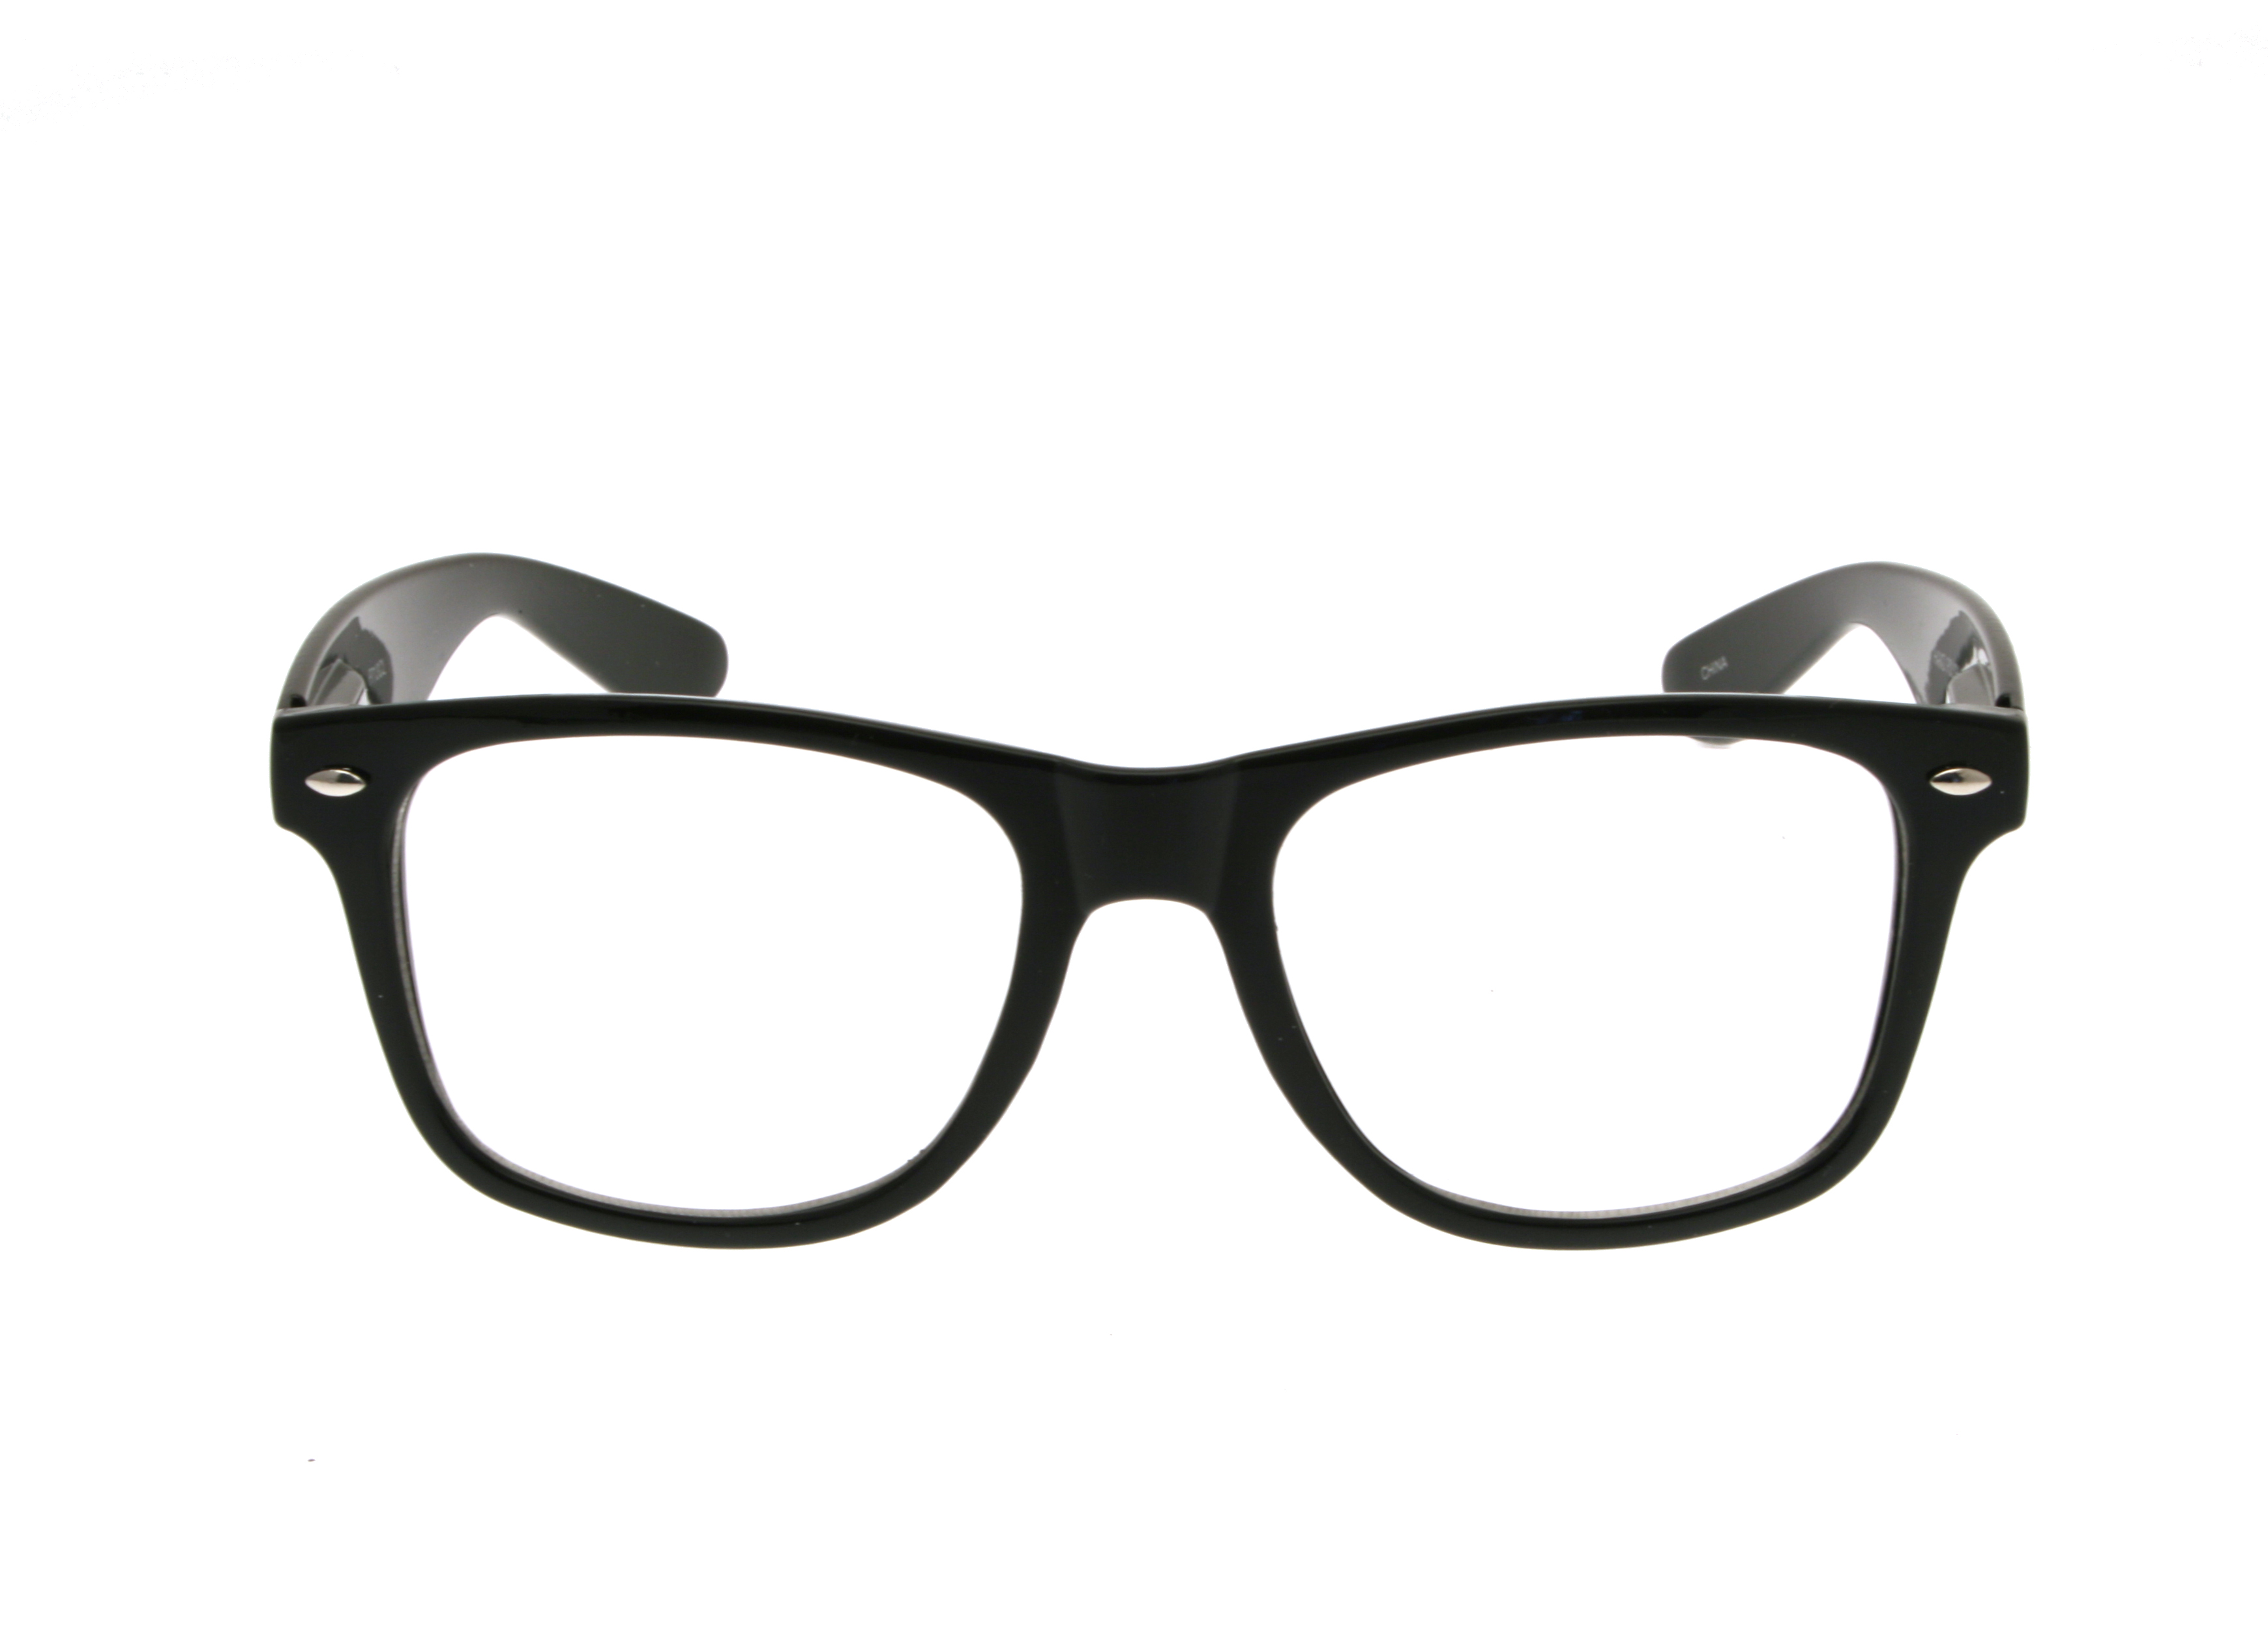 3479x2500 Nerd Glasses Clipart Images Image